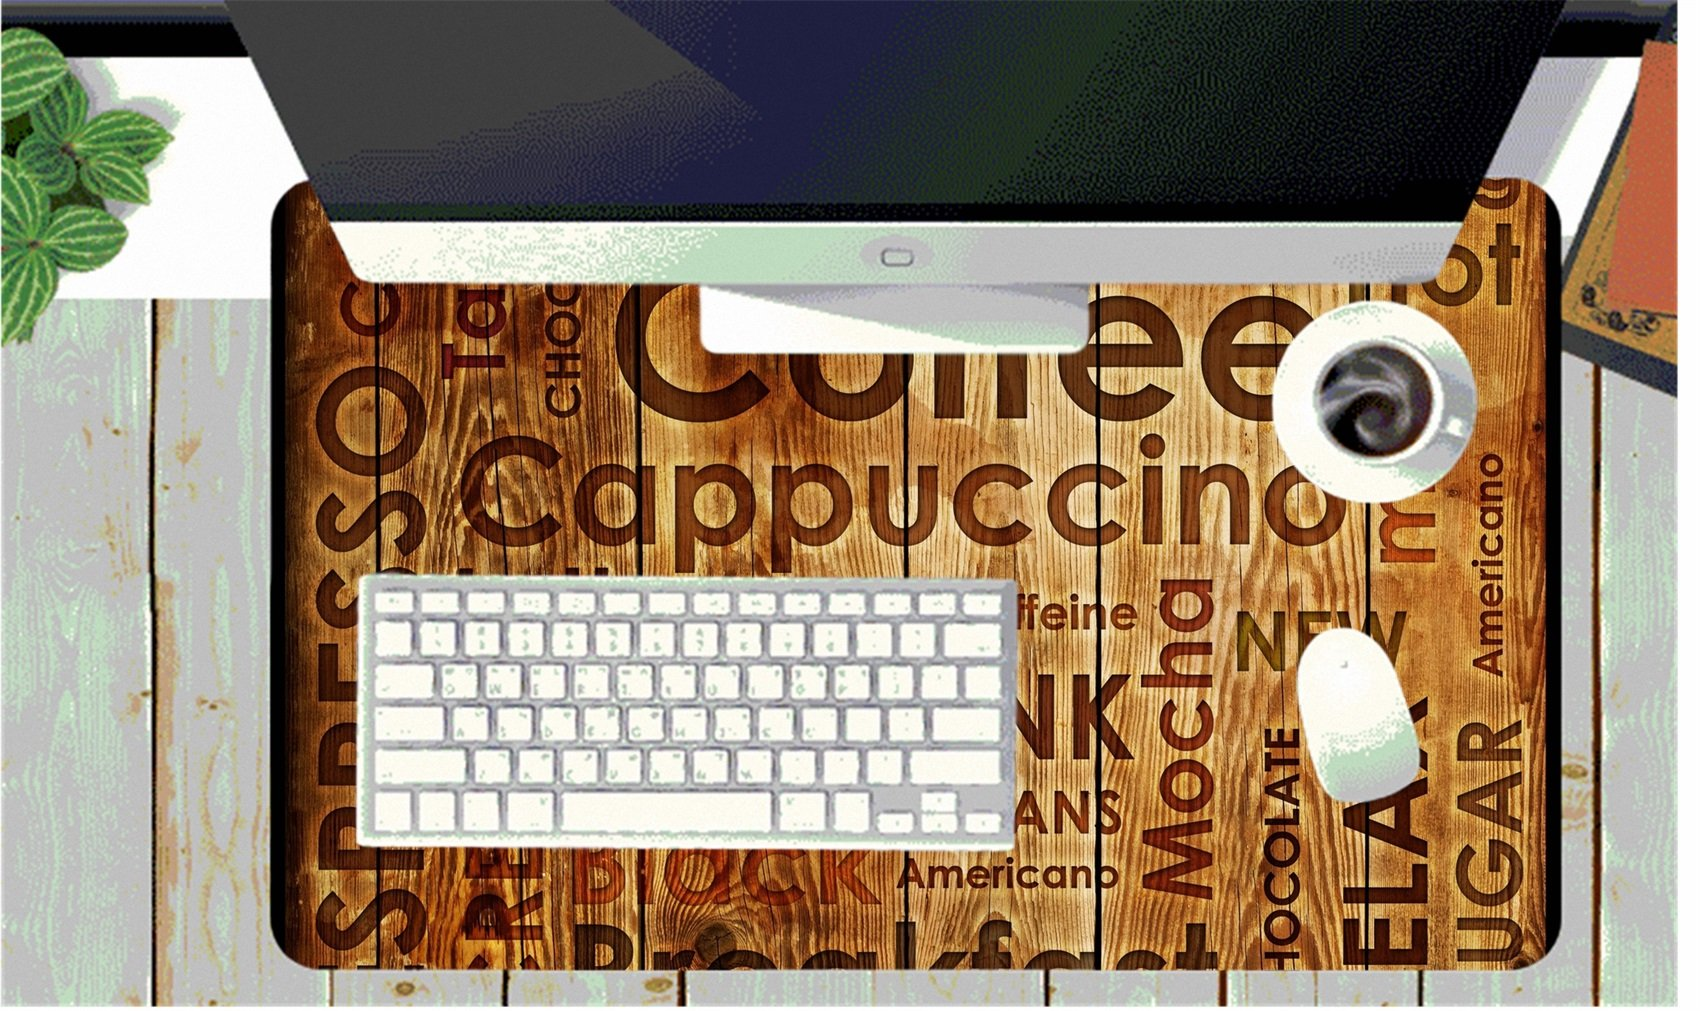 MSD Large Table Mat Non-Slip Natural Rubber Desk Pads Image 15092624 Sorts of Coffe on Wood Background by MSD (Image #2)